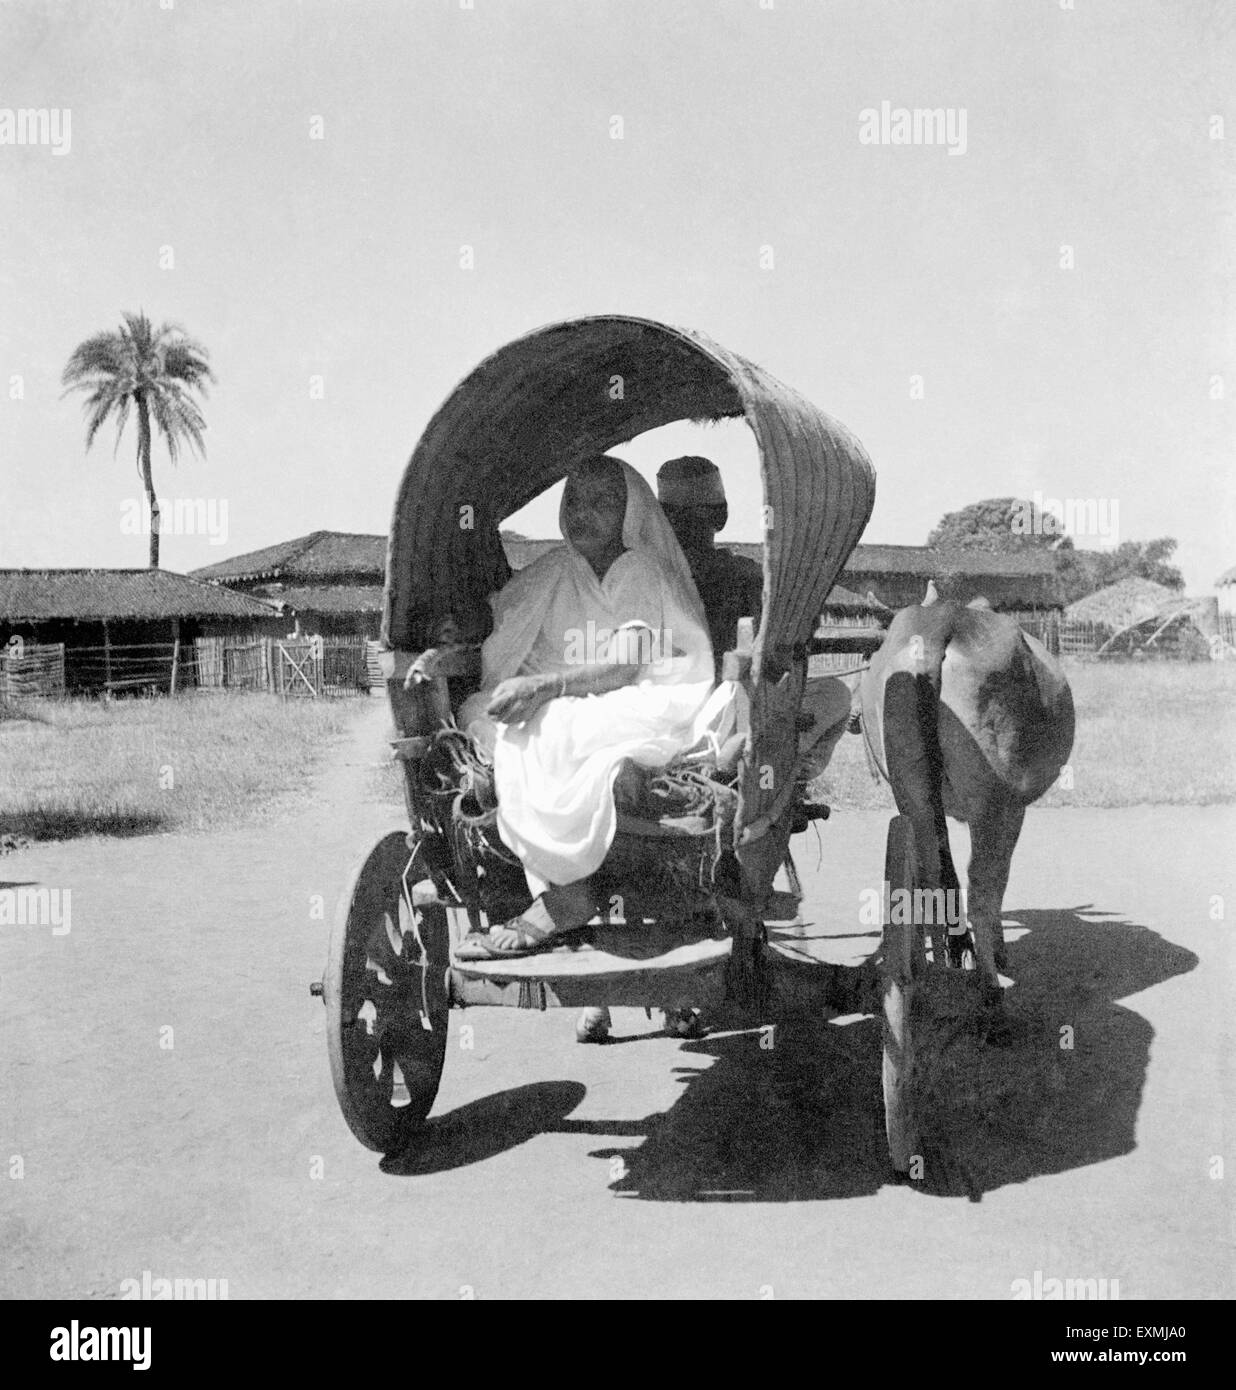 Kasturba Gandhi going in a bullock cart to meet her son Harilal's son in law Kuvarji Parekh at Sevagram Ashram - Stock Image